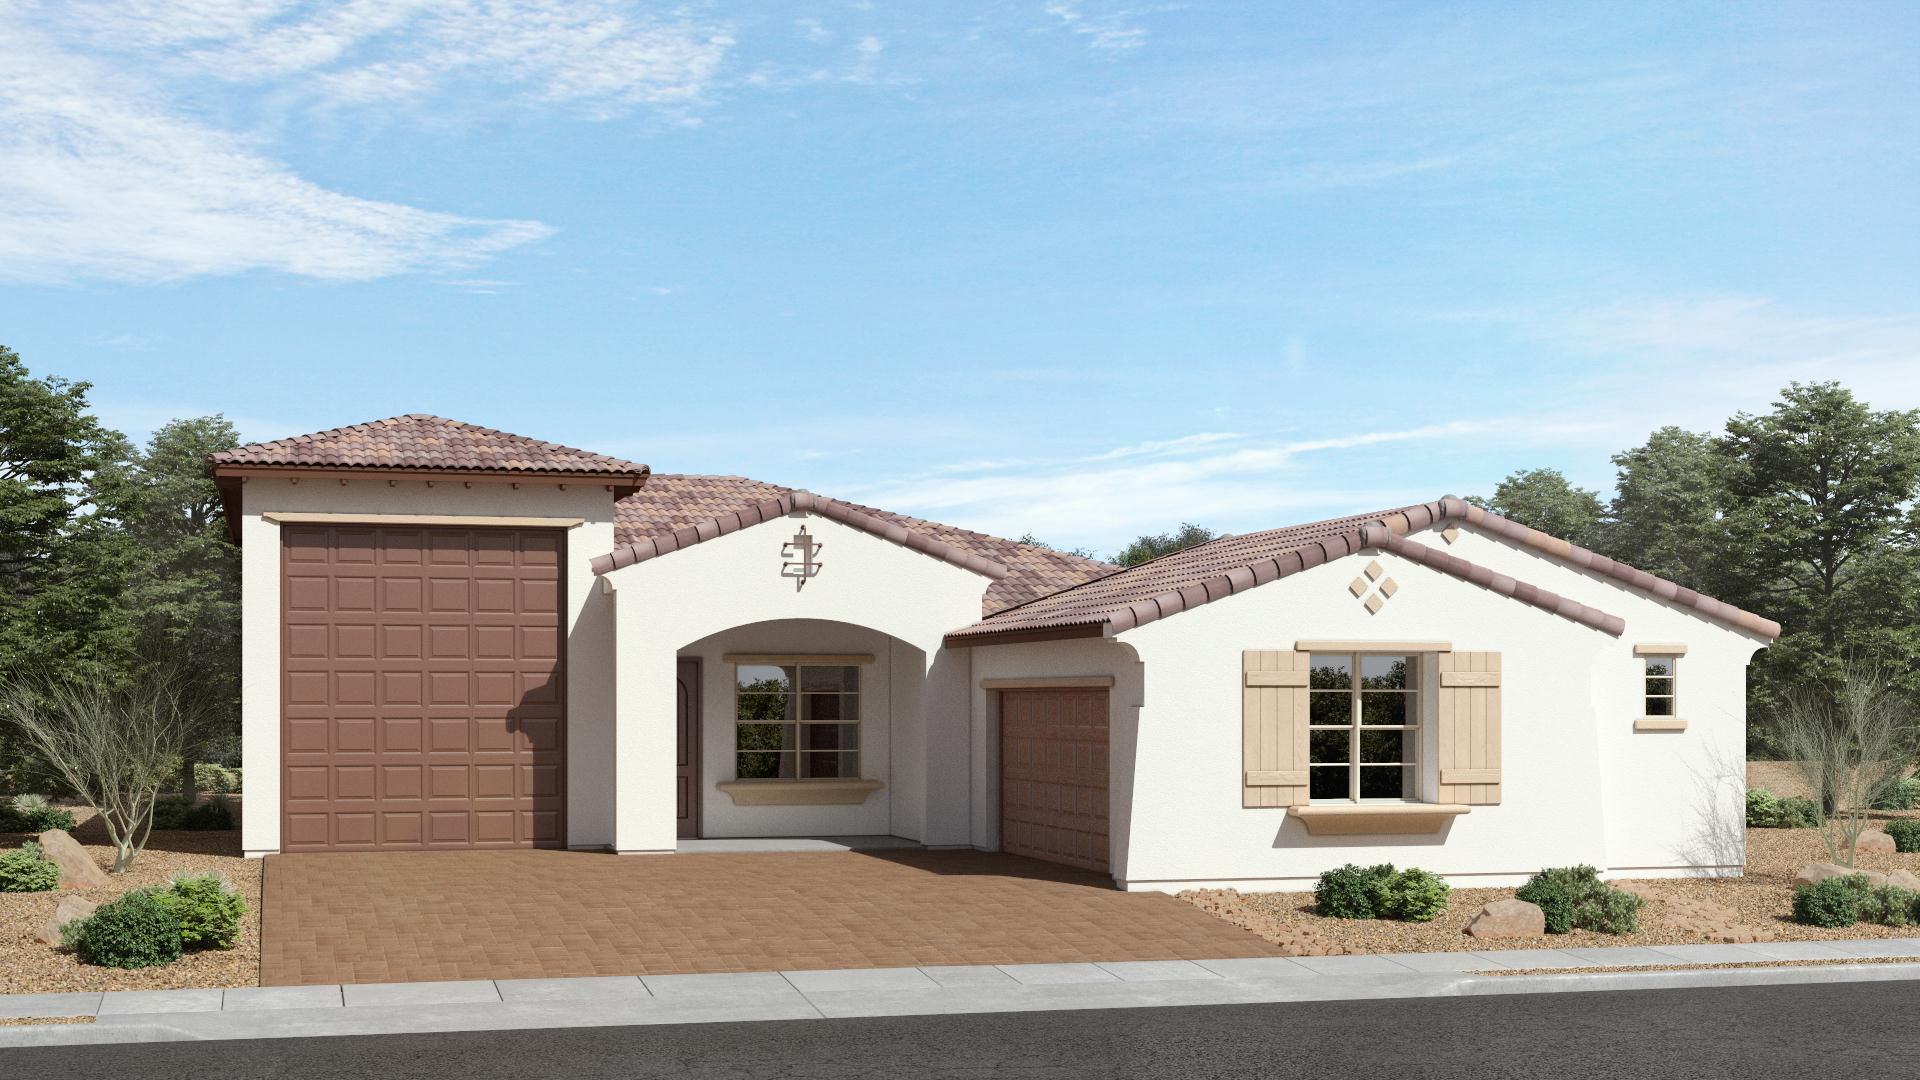 Exterior featured in The Emerald | Plan 55.1795RV By Brown Homes AZ in Prescott, AZ